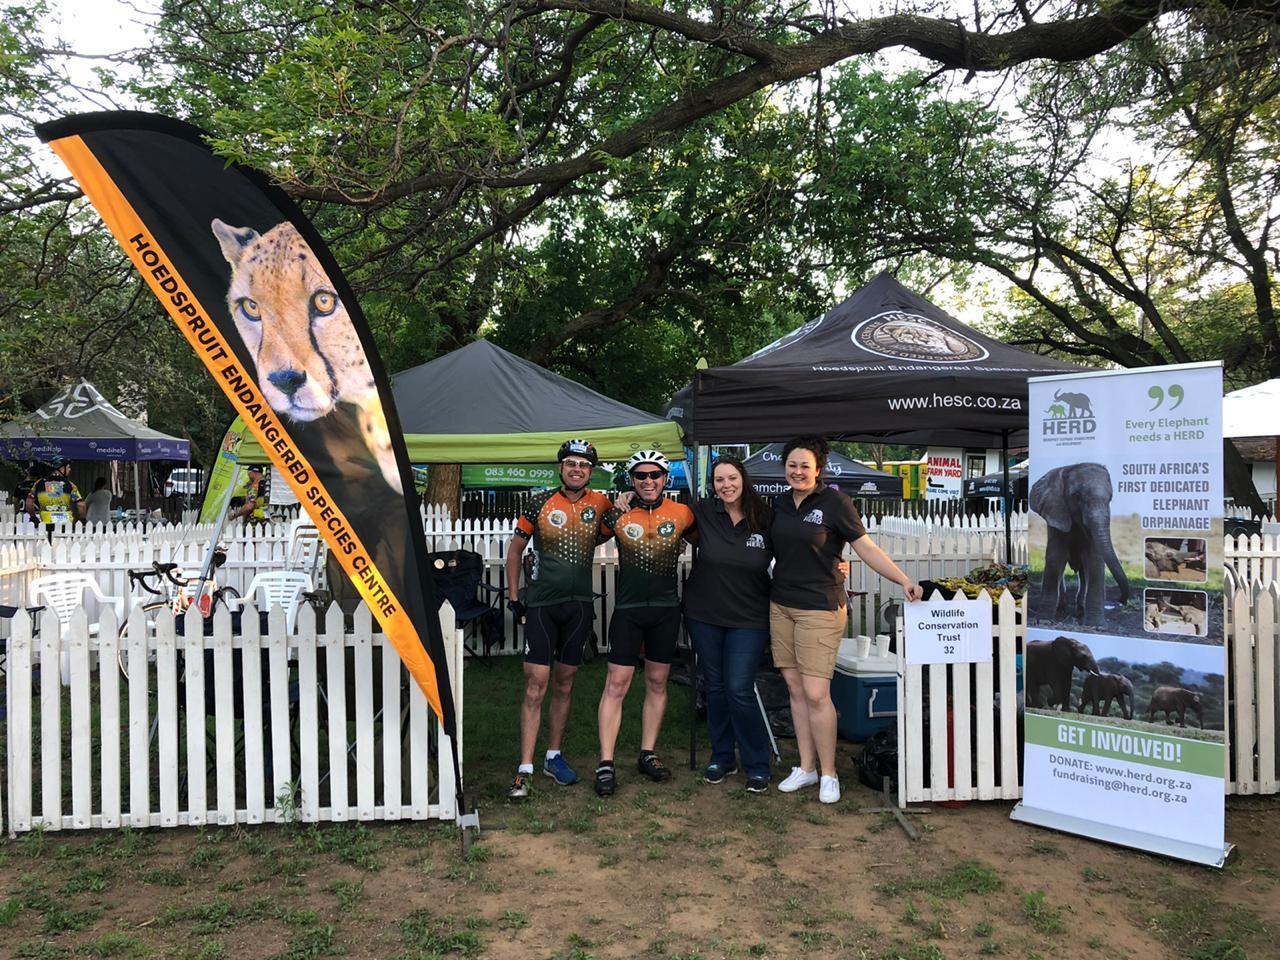 Wildlife Conservation Trust, Hoedspruit Endangered Species Centre, Hoedspruit Elephant Rehabilitation and Development, Discovery Ride Joburg, Ride for a Purpose, cycle, cycling